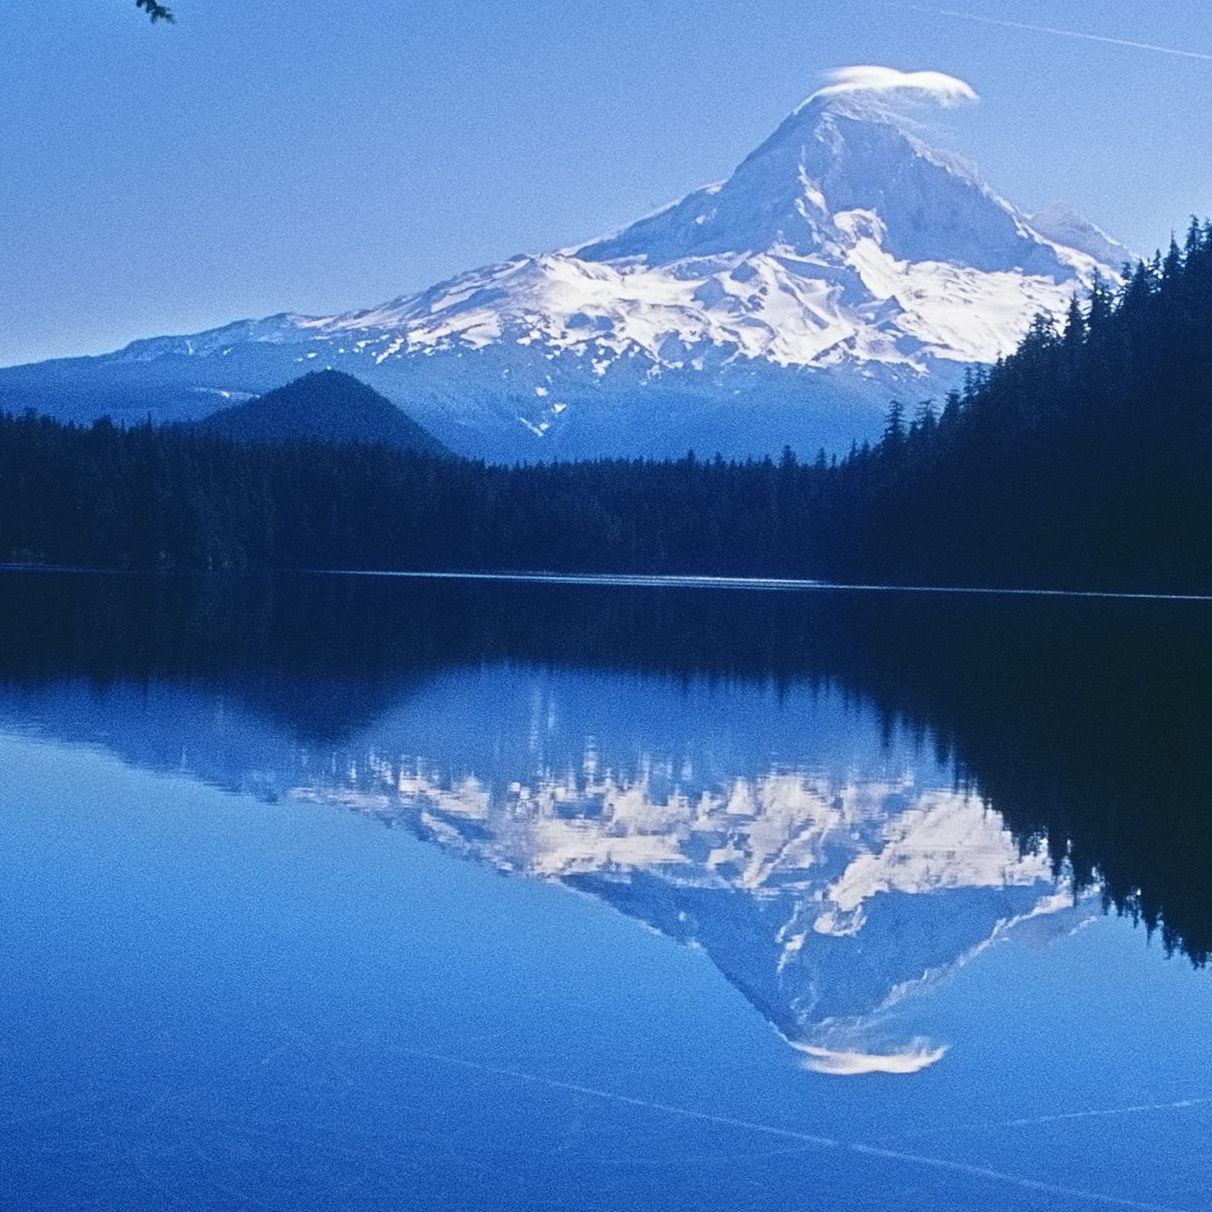 Mt. Hood Wilderness Legislation Moves Through the Senate